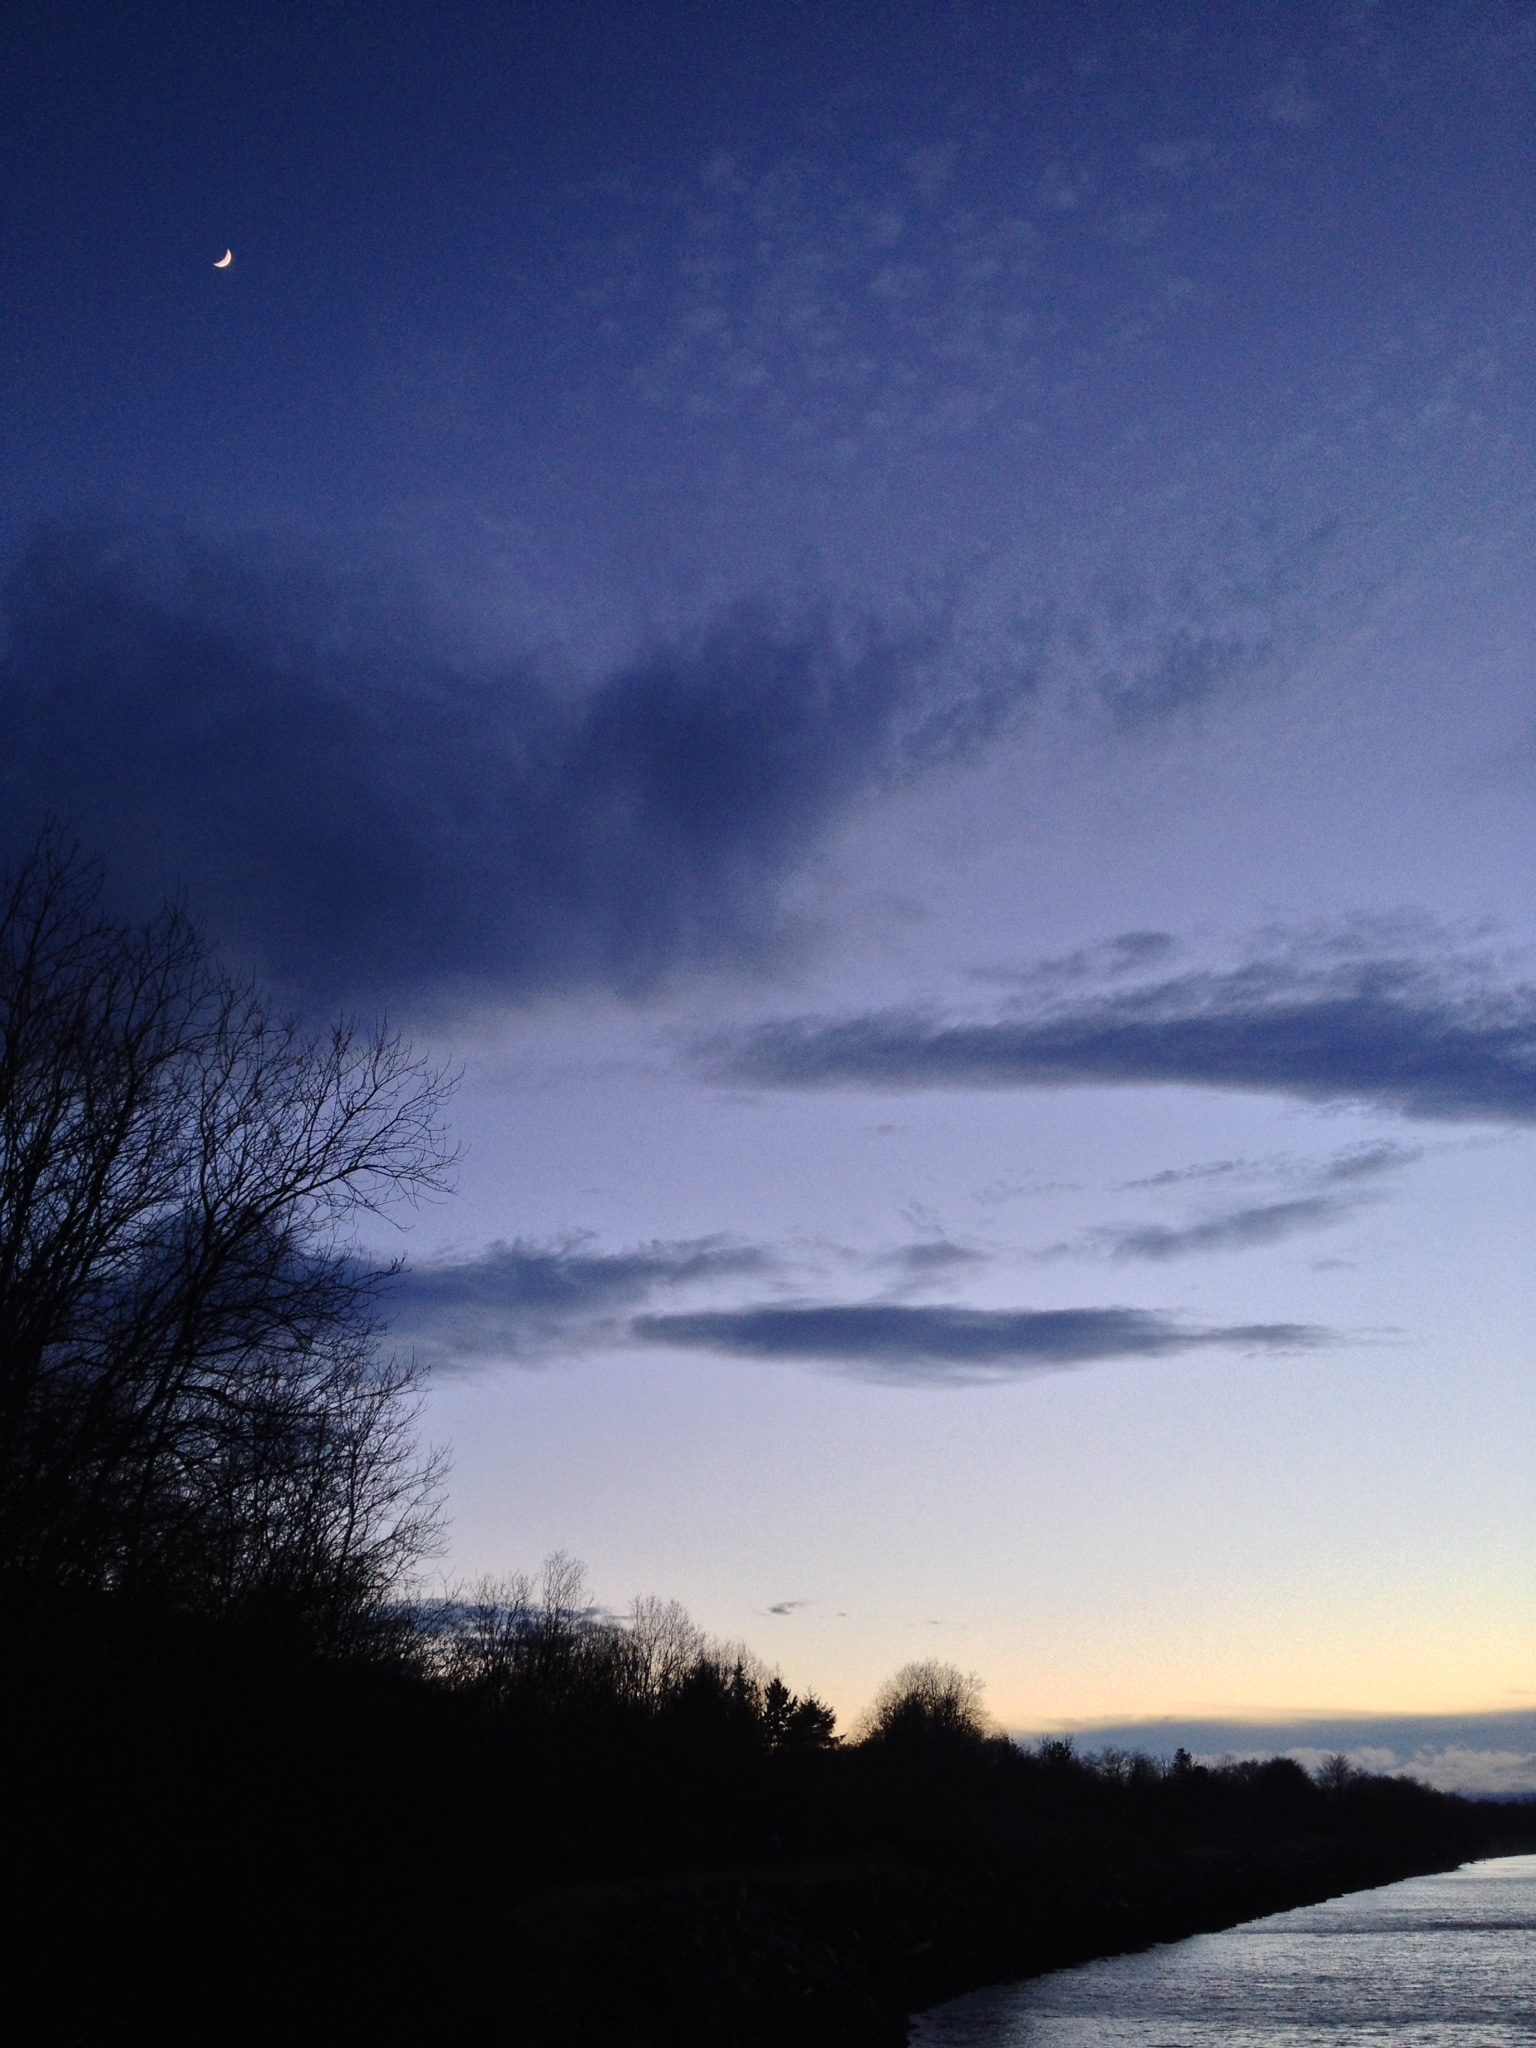 The moon smiles, a fattening crescent, in the top left corner. The sky behind it is dark purple. It fades to light purple and then to light orange on the horizon. Scraggly bare tree branches fight with dark smudges of clouds.